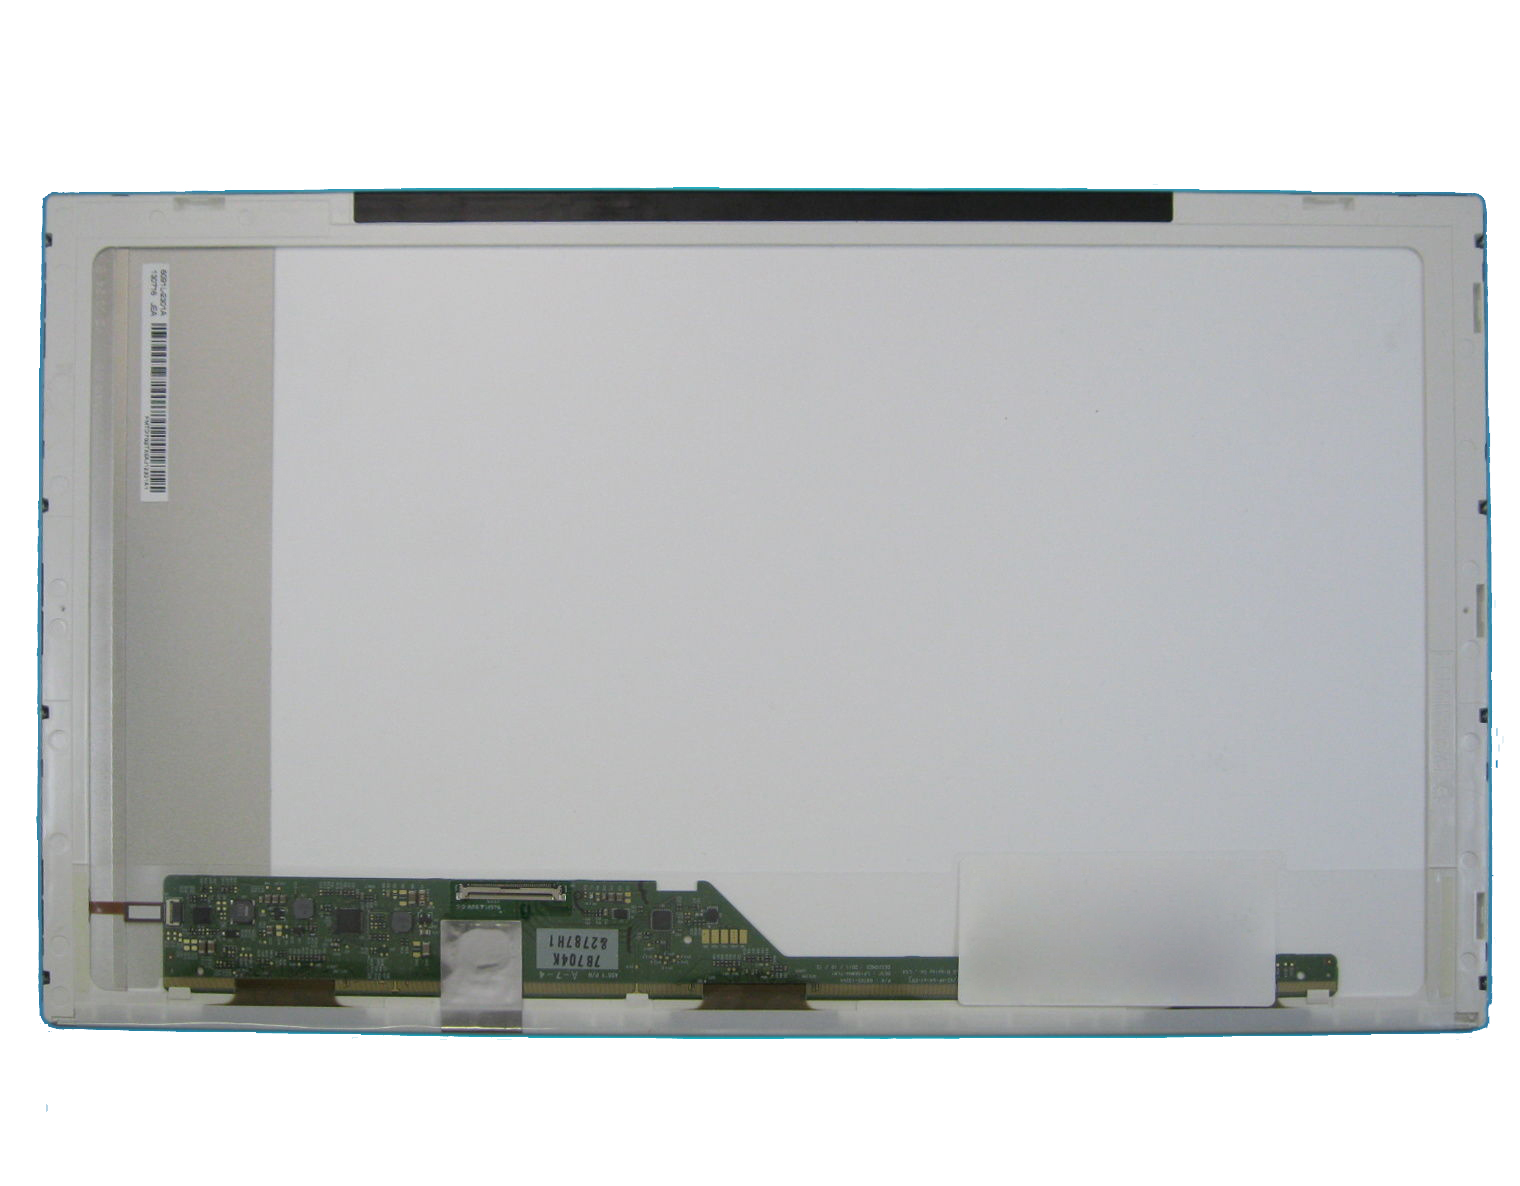 QuYing Laptop LCD Screen for acer EXTENSA 5635G 5635ZG 5635Z 5235 5635 SERIES (15.6 inch 1366x768 40Pin) quying laptop lcd screen for acer extensa 5235 as5551 series 15 6 inch 1366x768 40pin tk